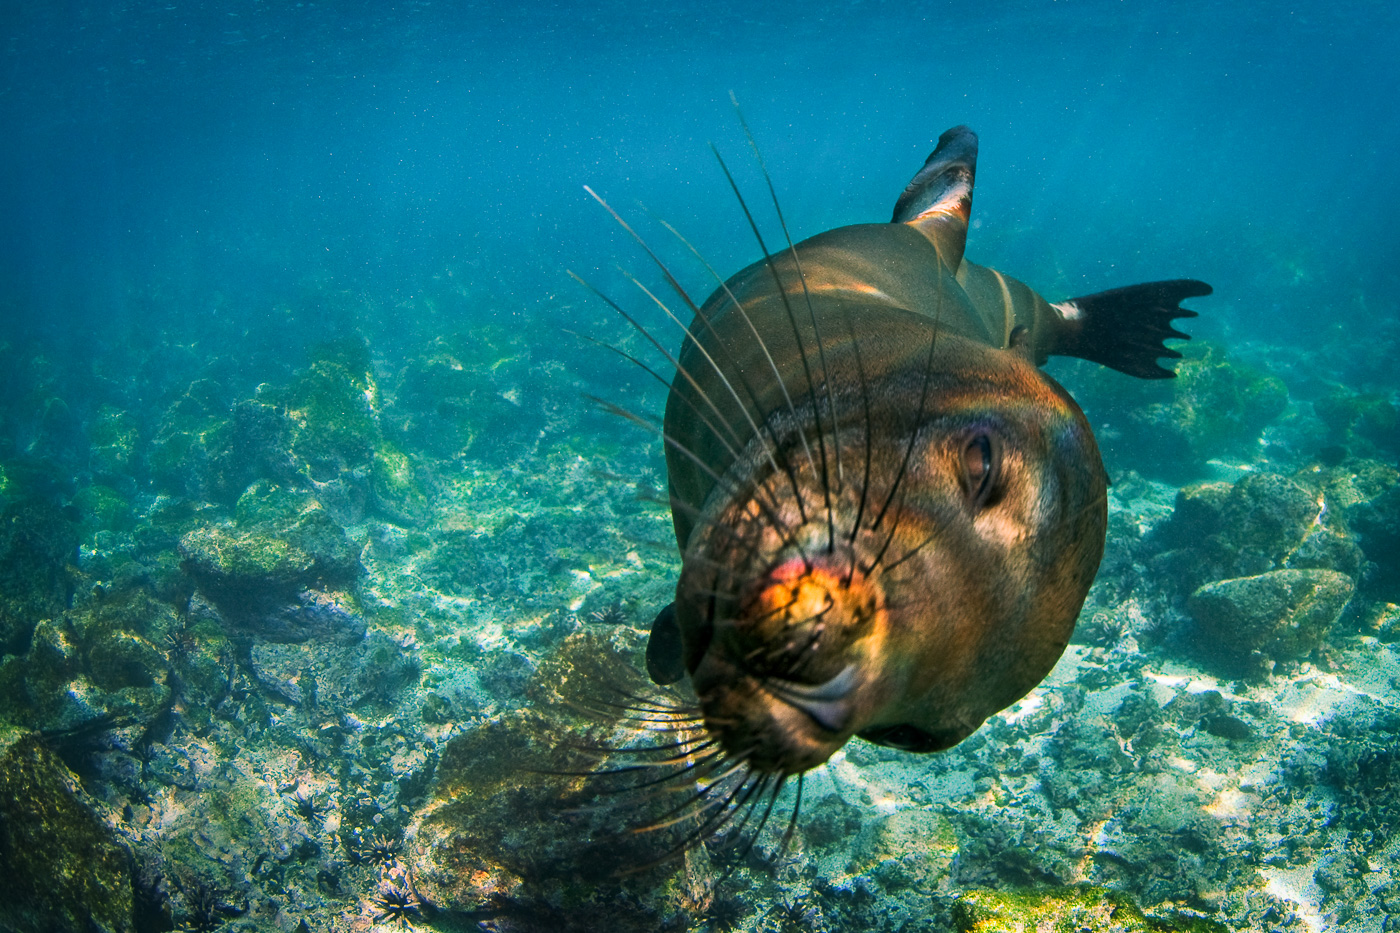 sealion with rainbo on nose